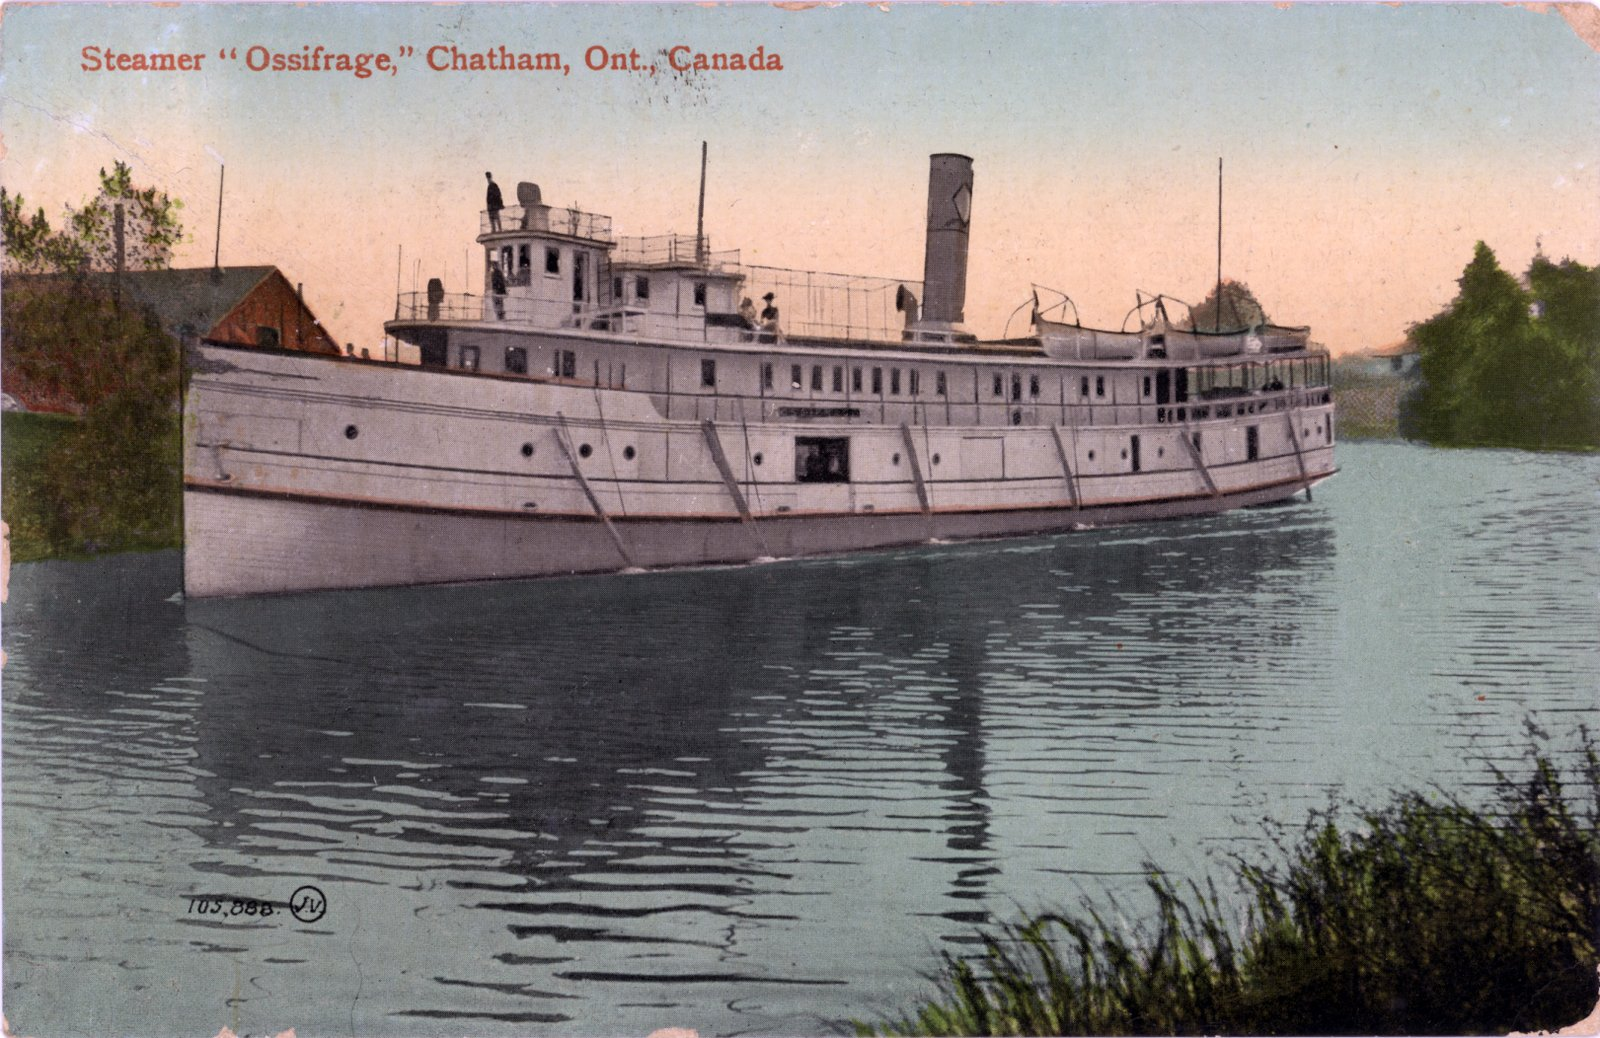 """Steamer """"Ossifrage,"""" Chatham, Ont., Canada"""